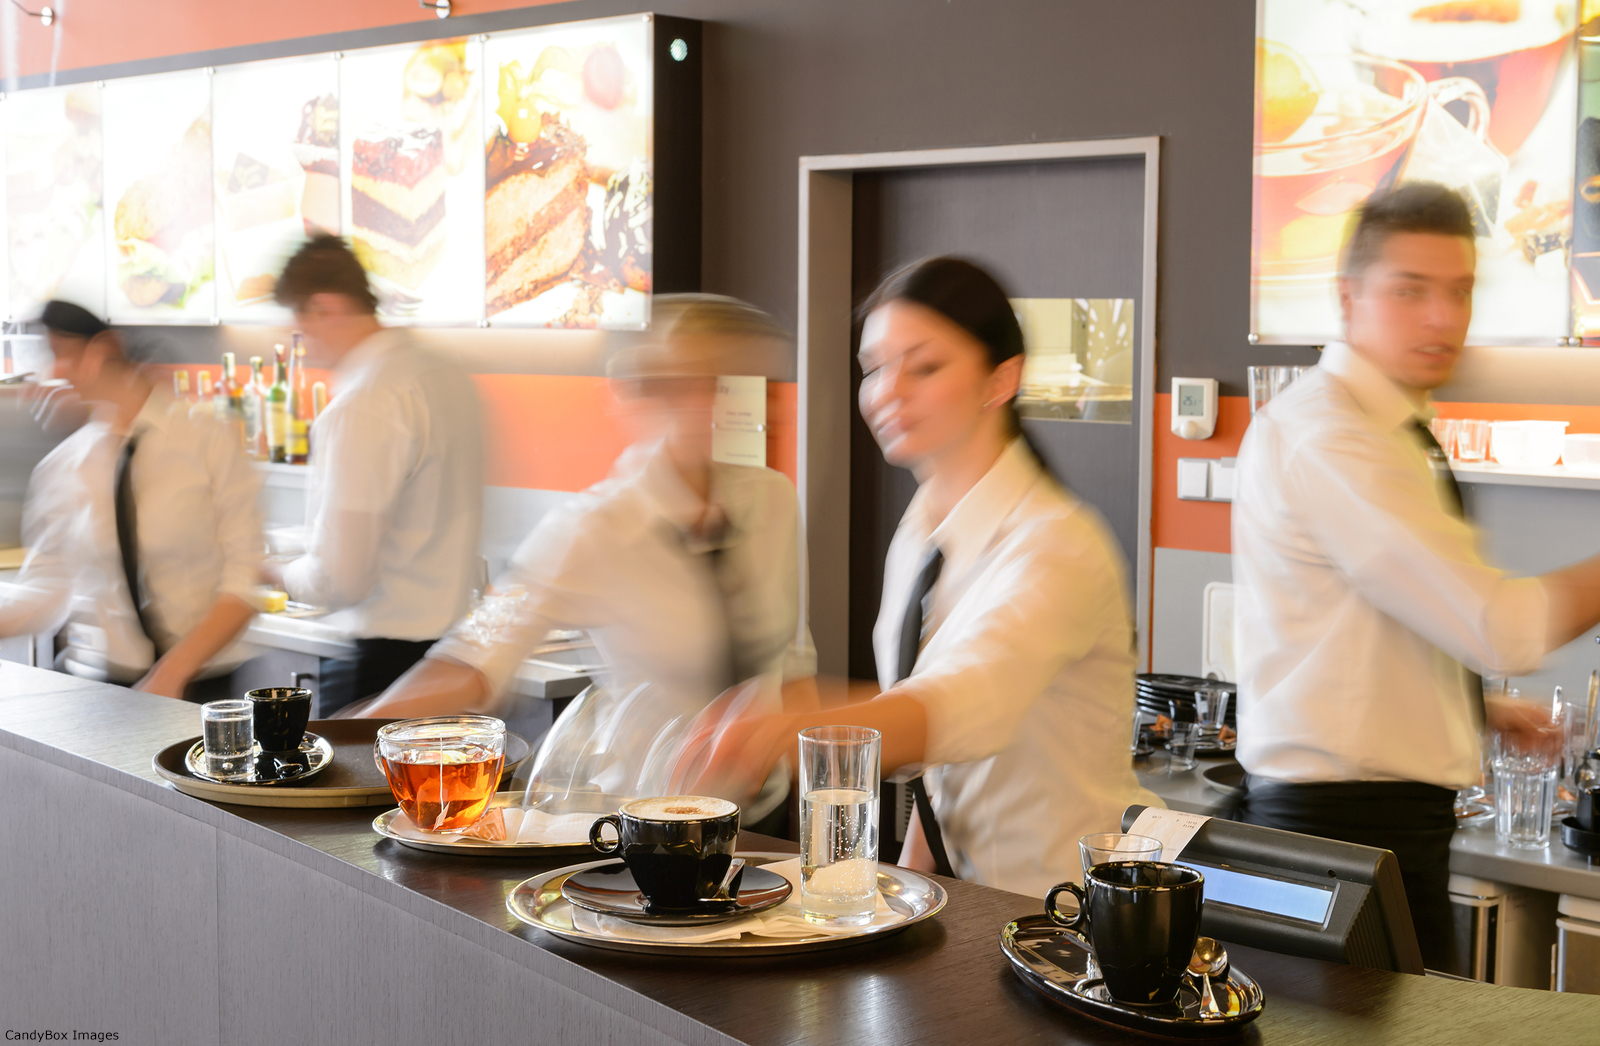 Commercial Security Systems Help Keep Busy Restaurant Managers Informed